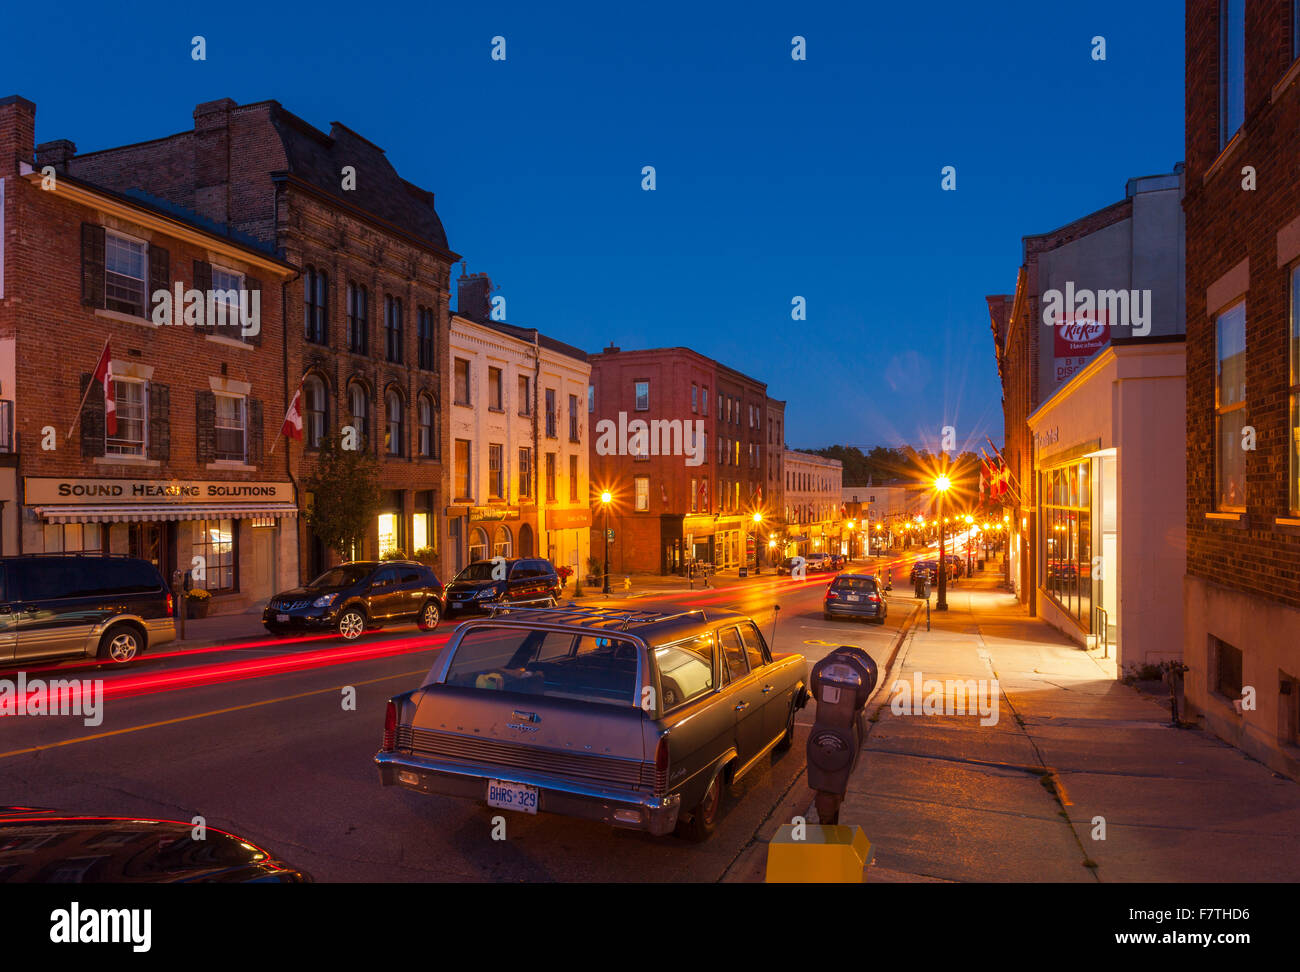 Walton Street with a Rambler Ambassador in the foreground in downtown Port Hope at dusk. Ontario, Canada. Stock Photo